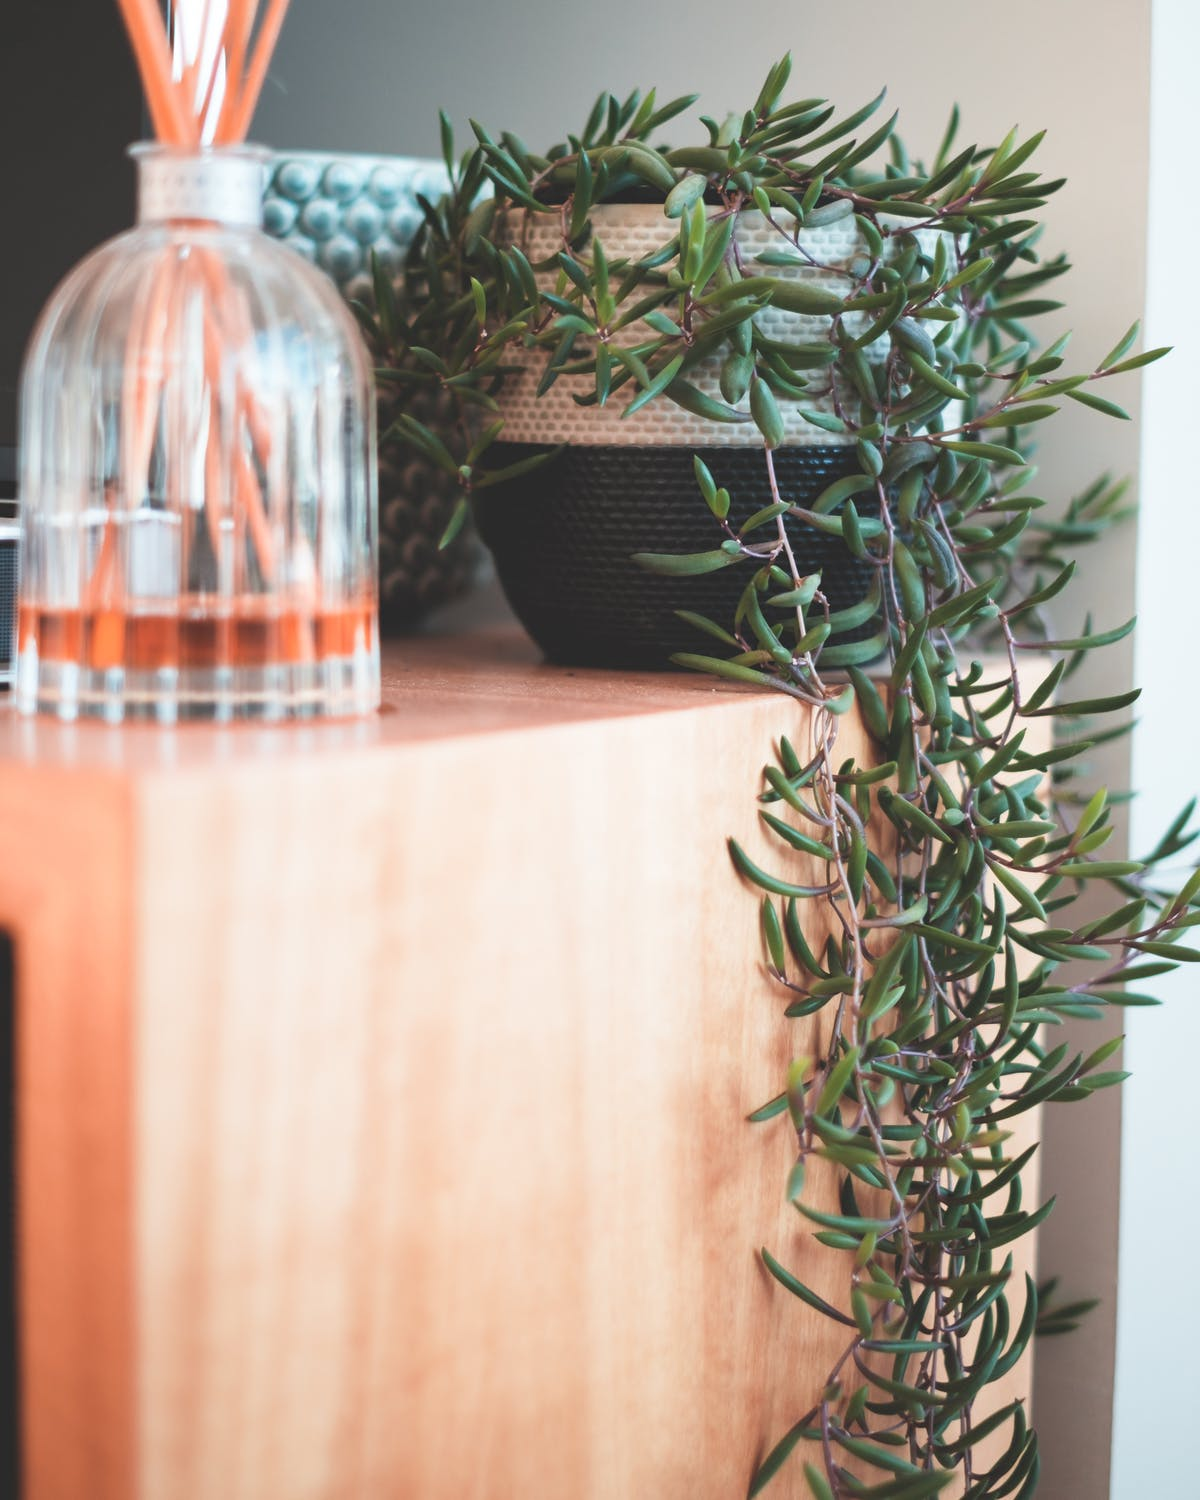 Boho decorating - adding greenery and hanging plants to your space!